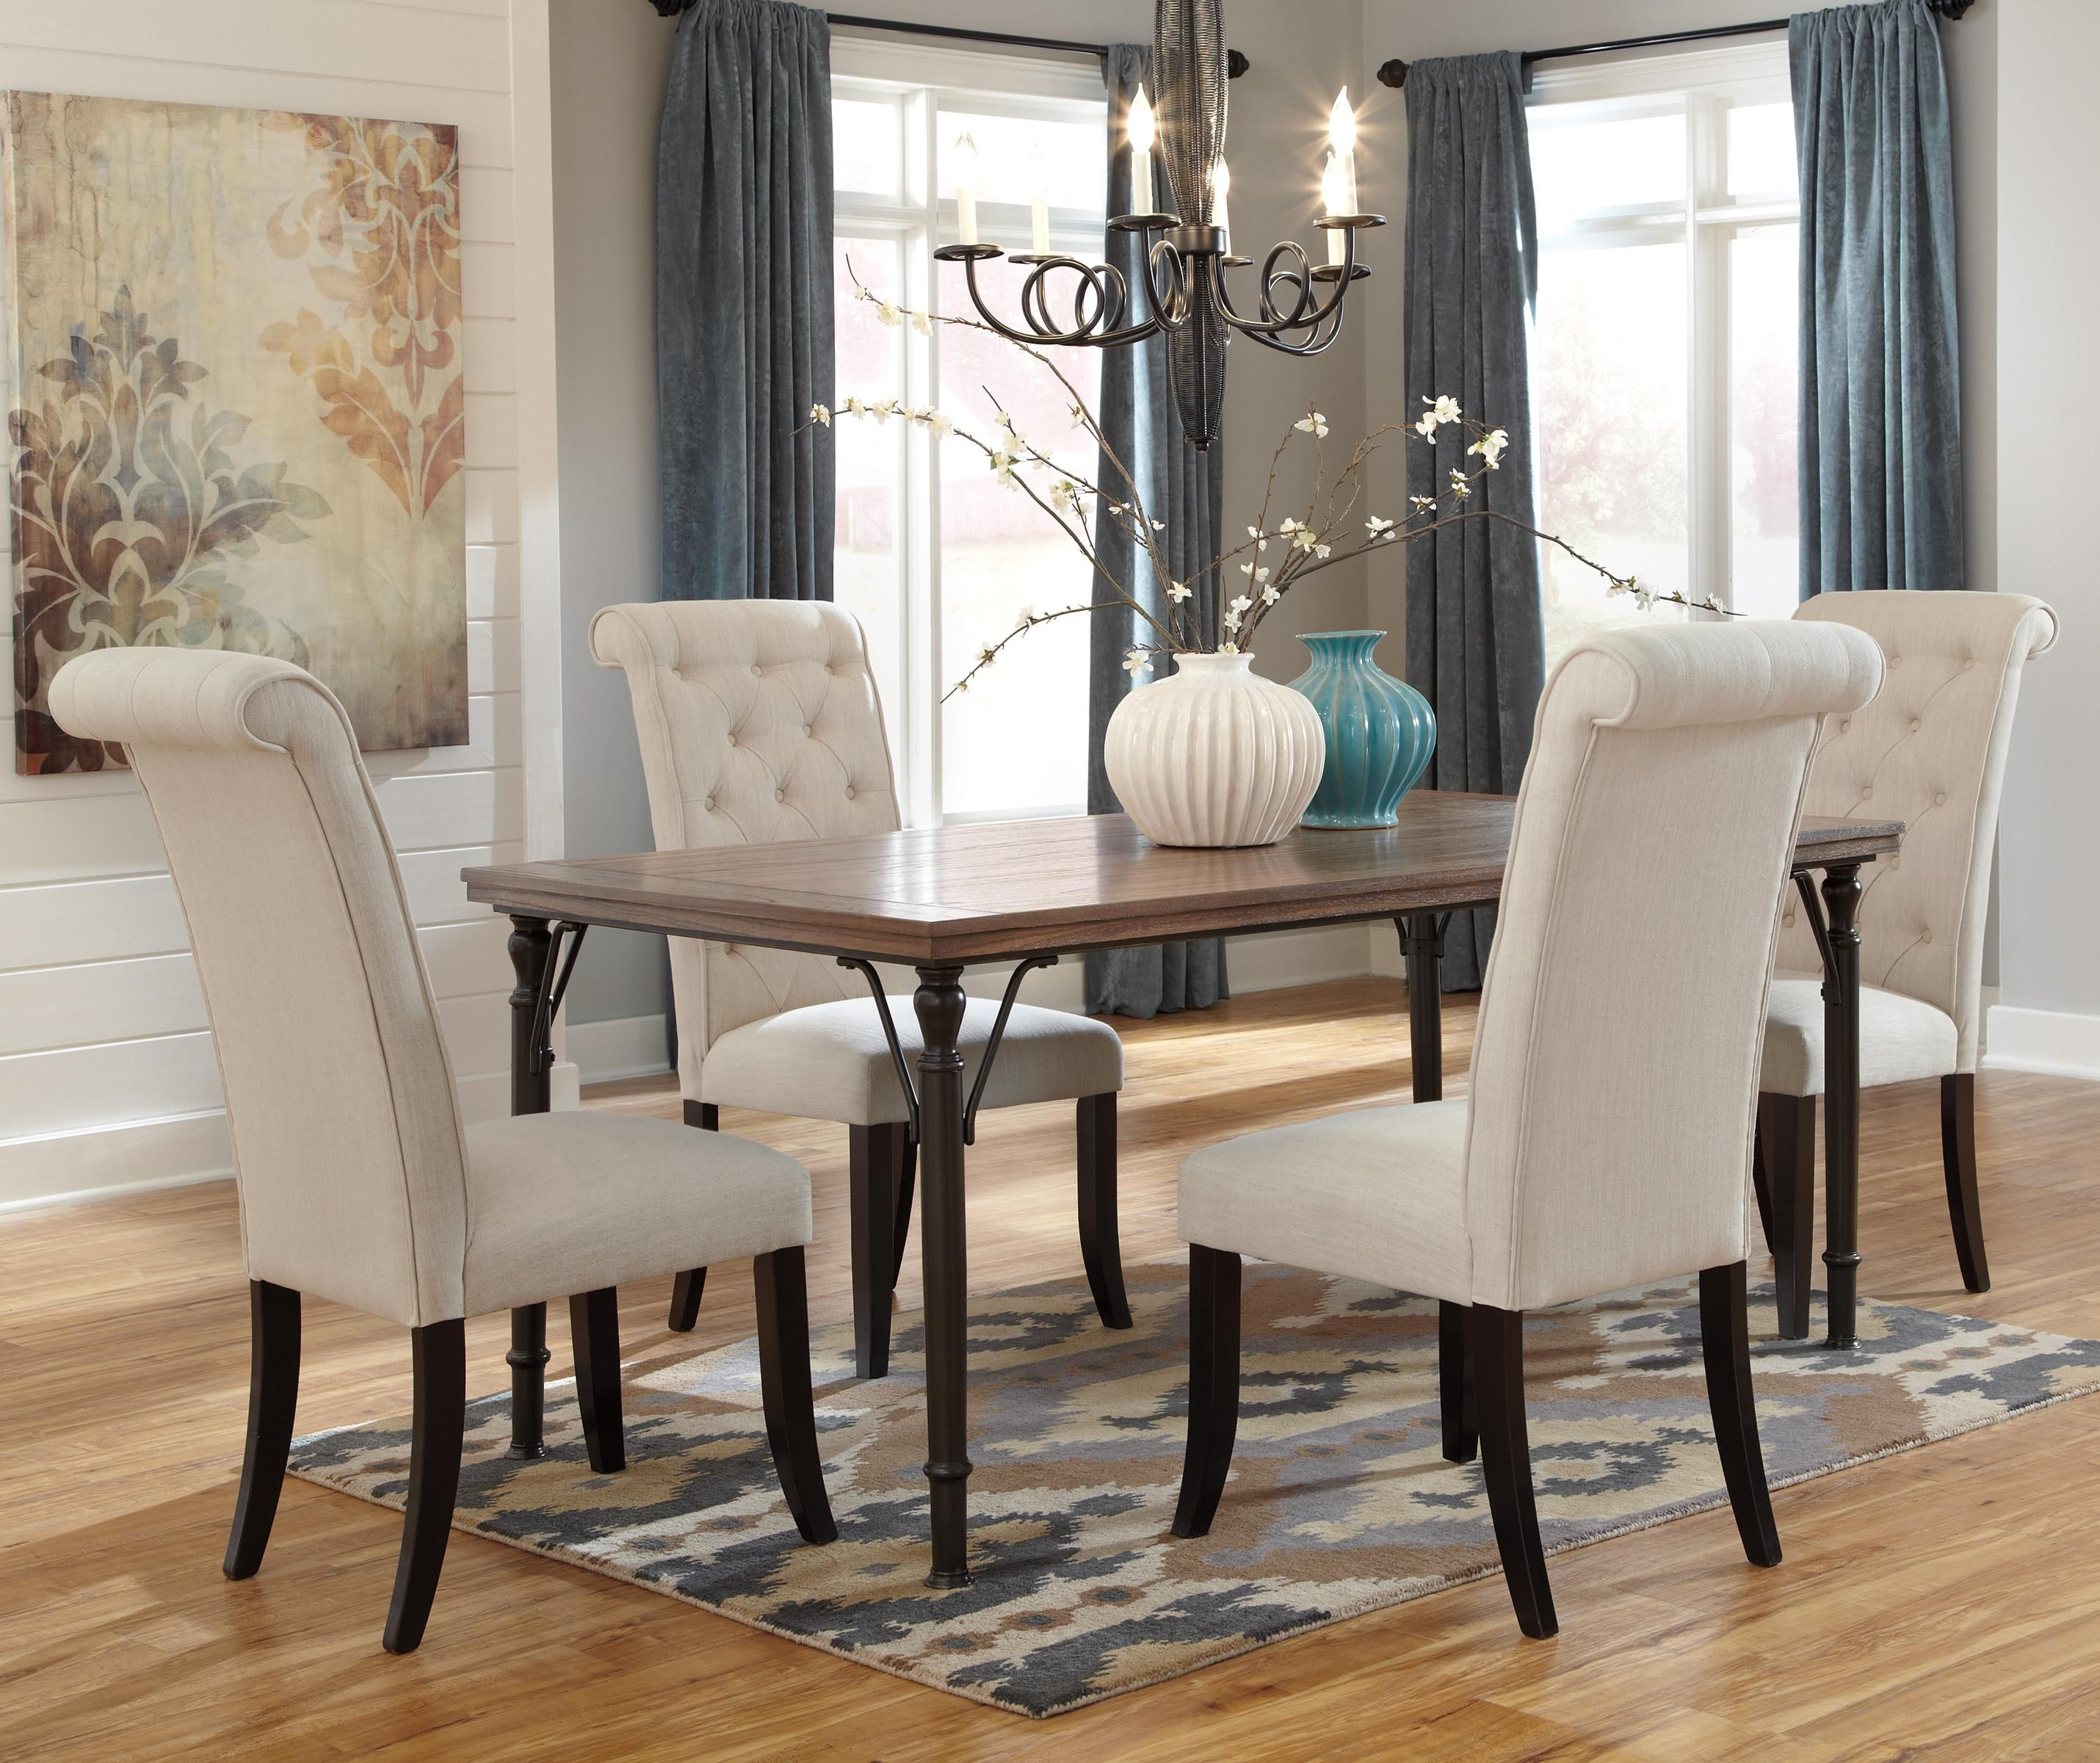 Tripton 5 Piece Rectangular Dining Room Table Set By Signature